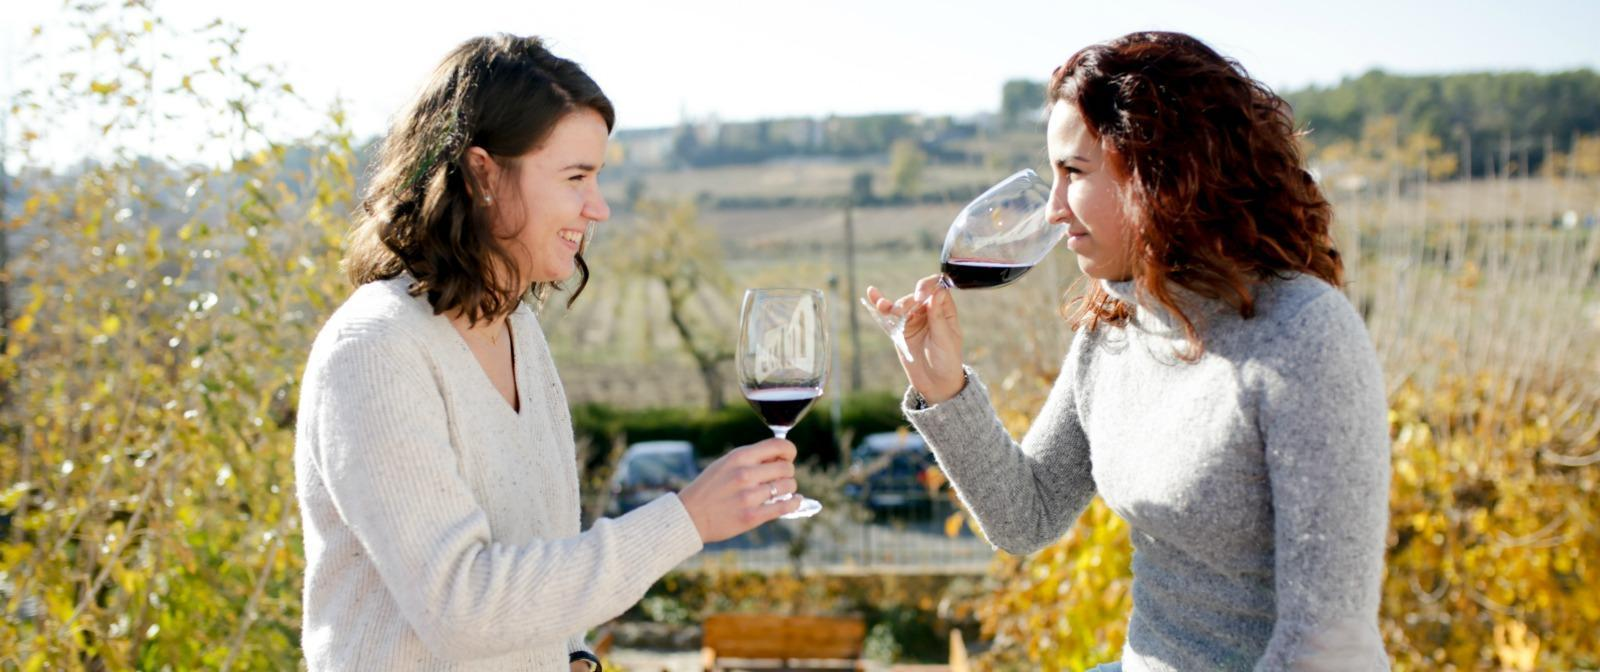 Visit the winery in local languages penedes tour pares balta